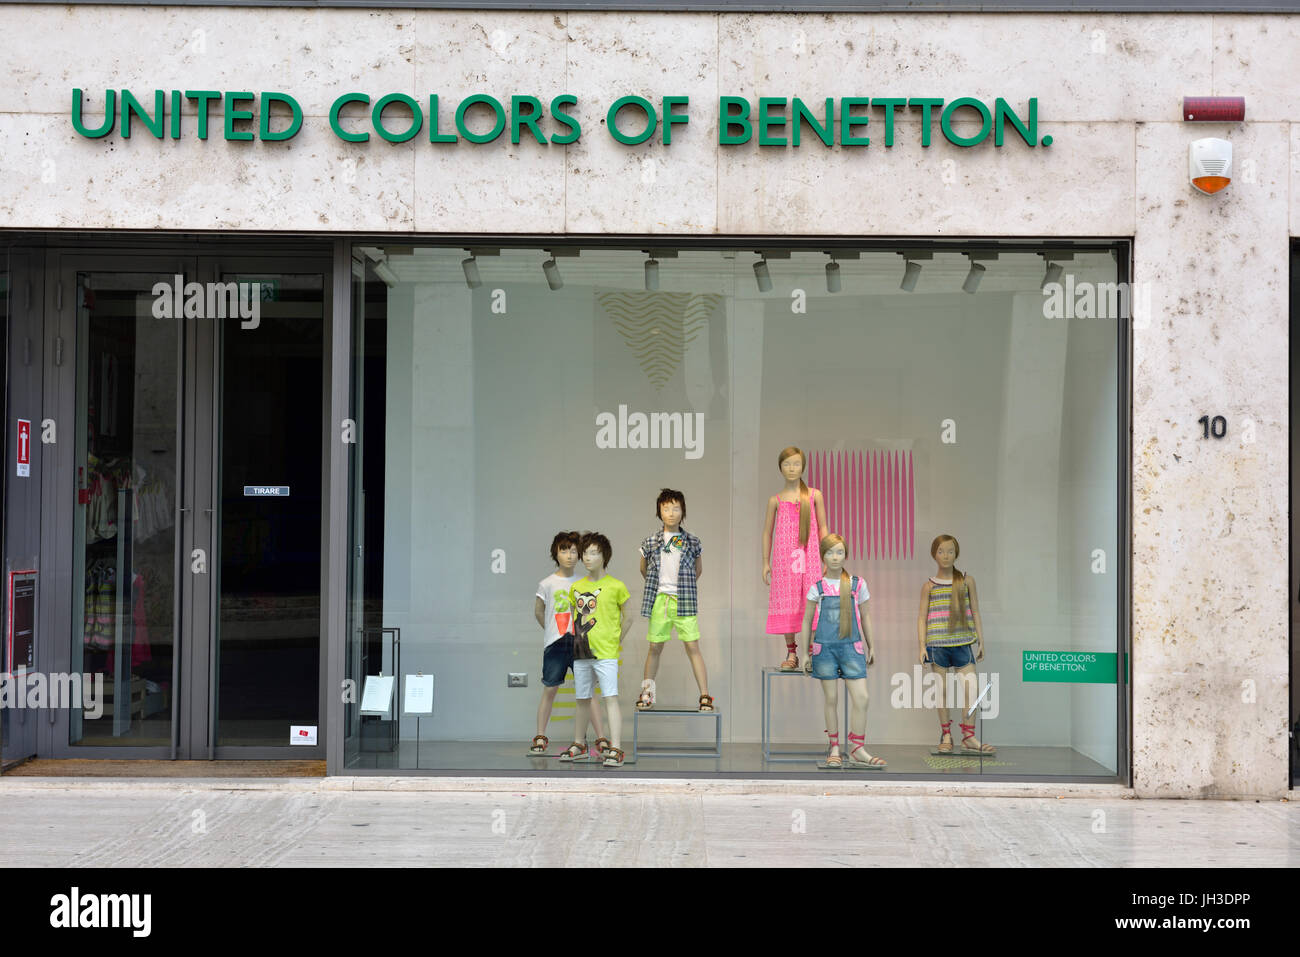 Clothing shop window display 'United Colors of Benetton' - Stock Image